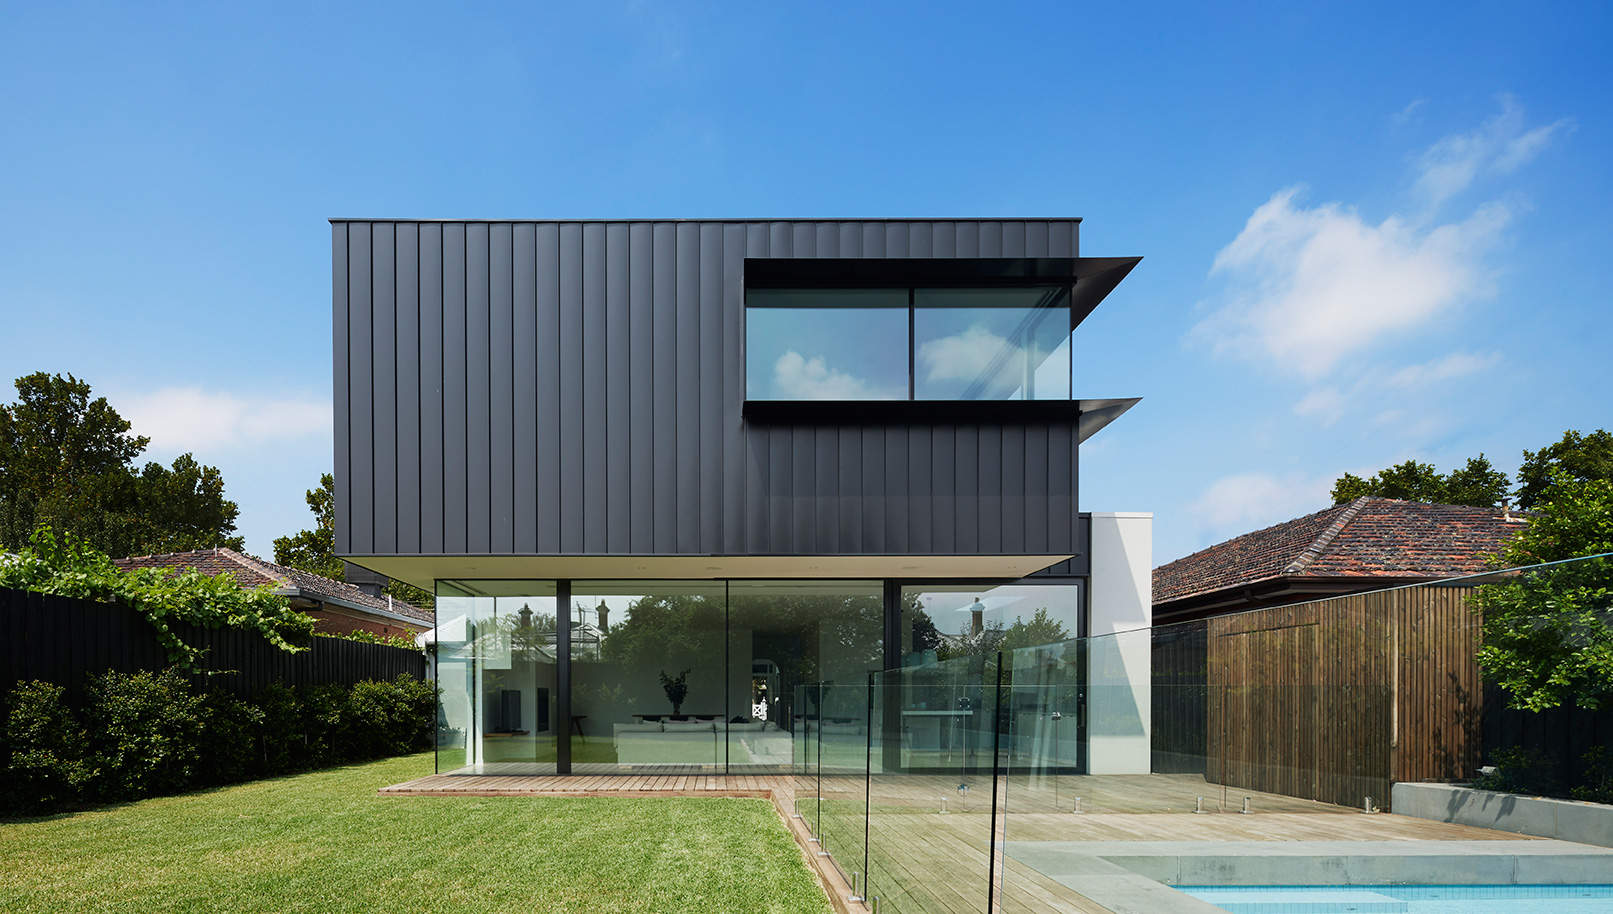 example of completed high end home extension by C.Kairouz Architects in Northcote